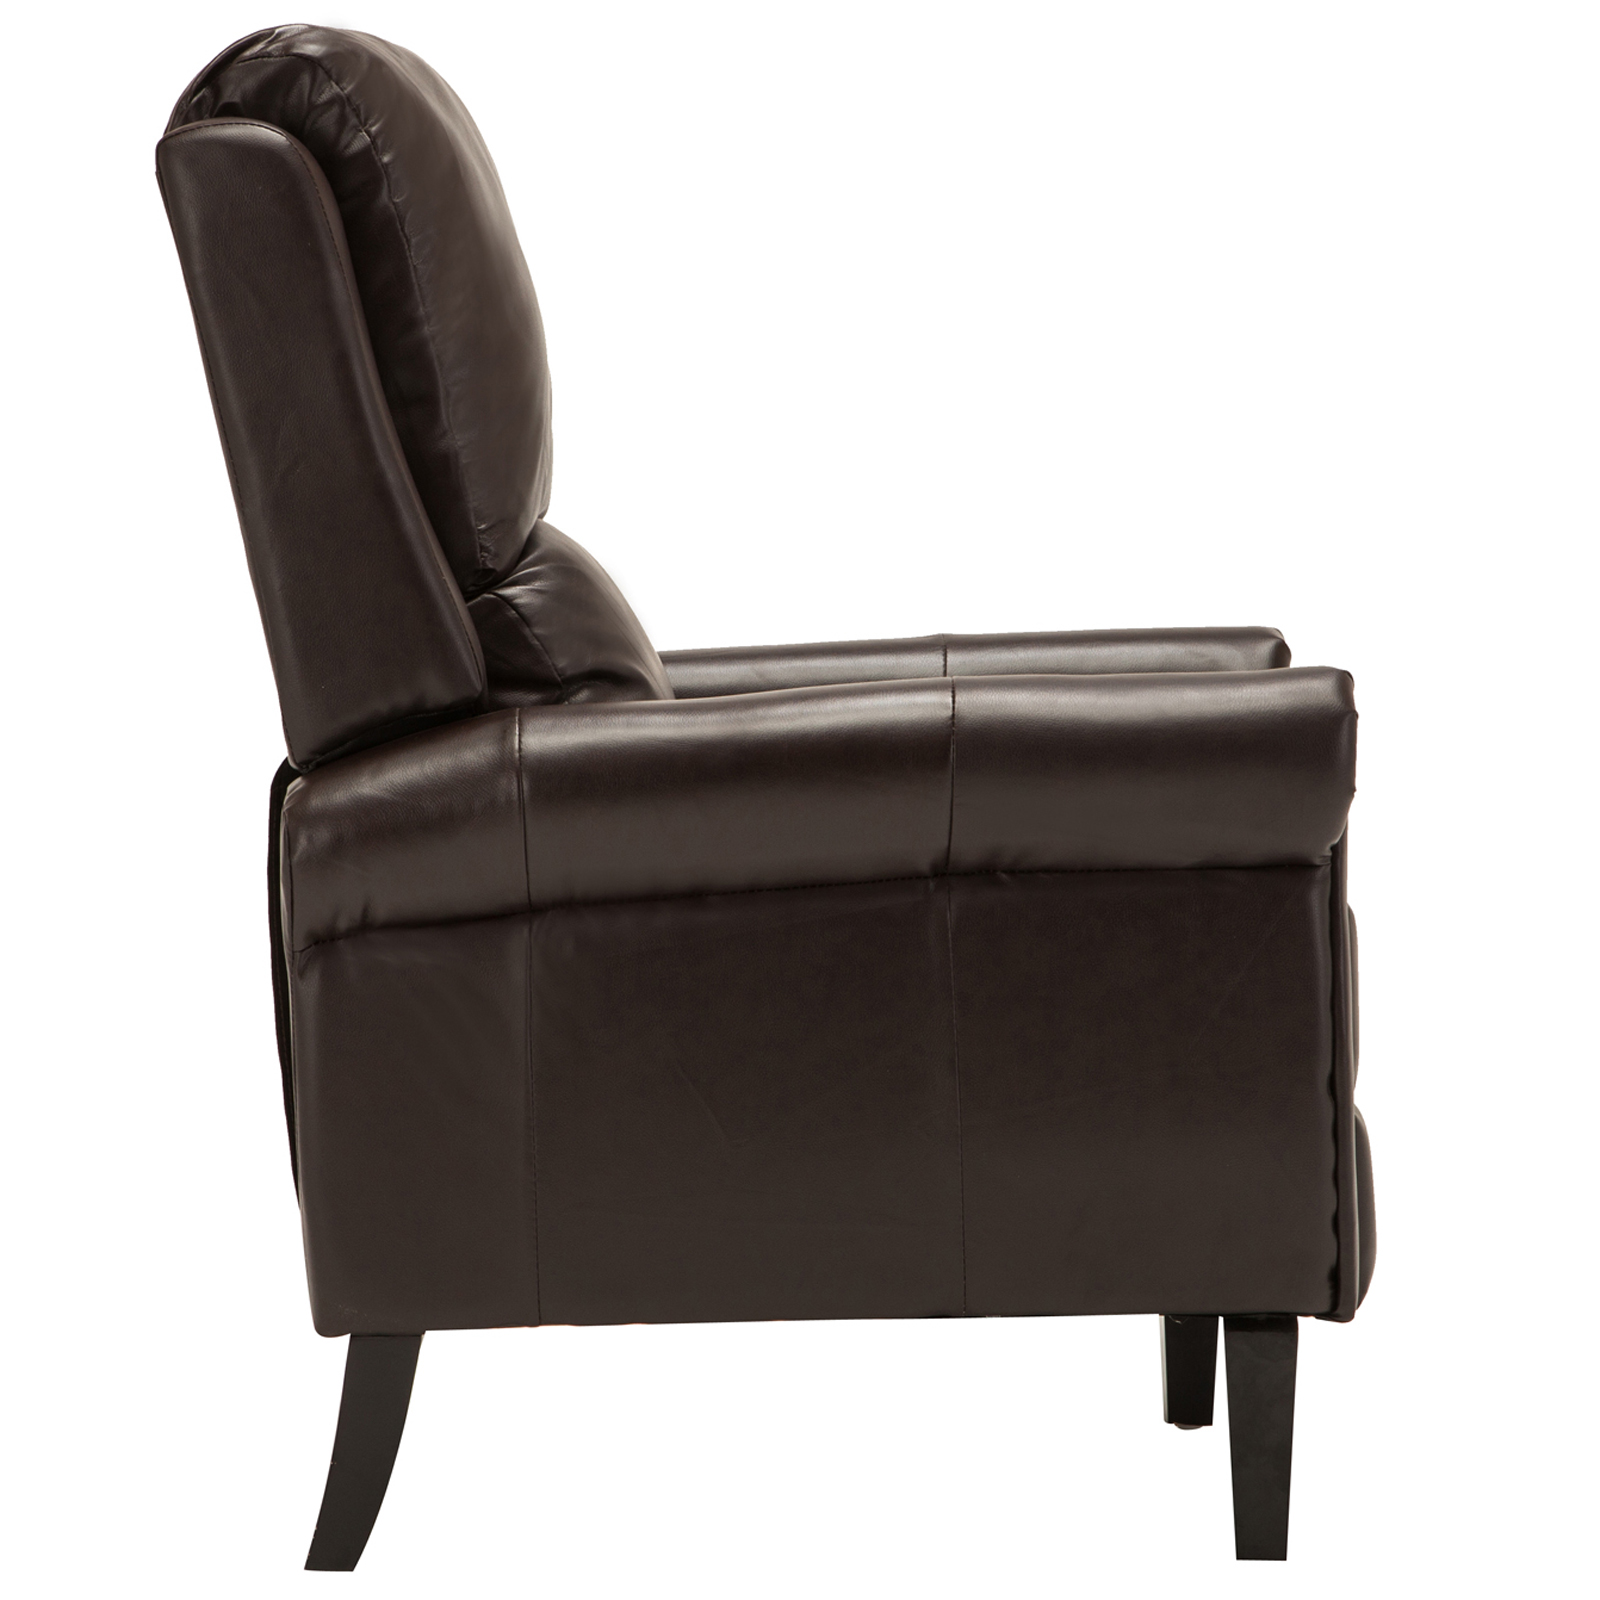 brown leather sofa accent chair with chairs recliner armchair w leg rest